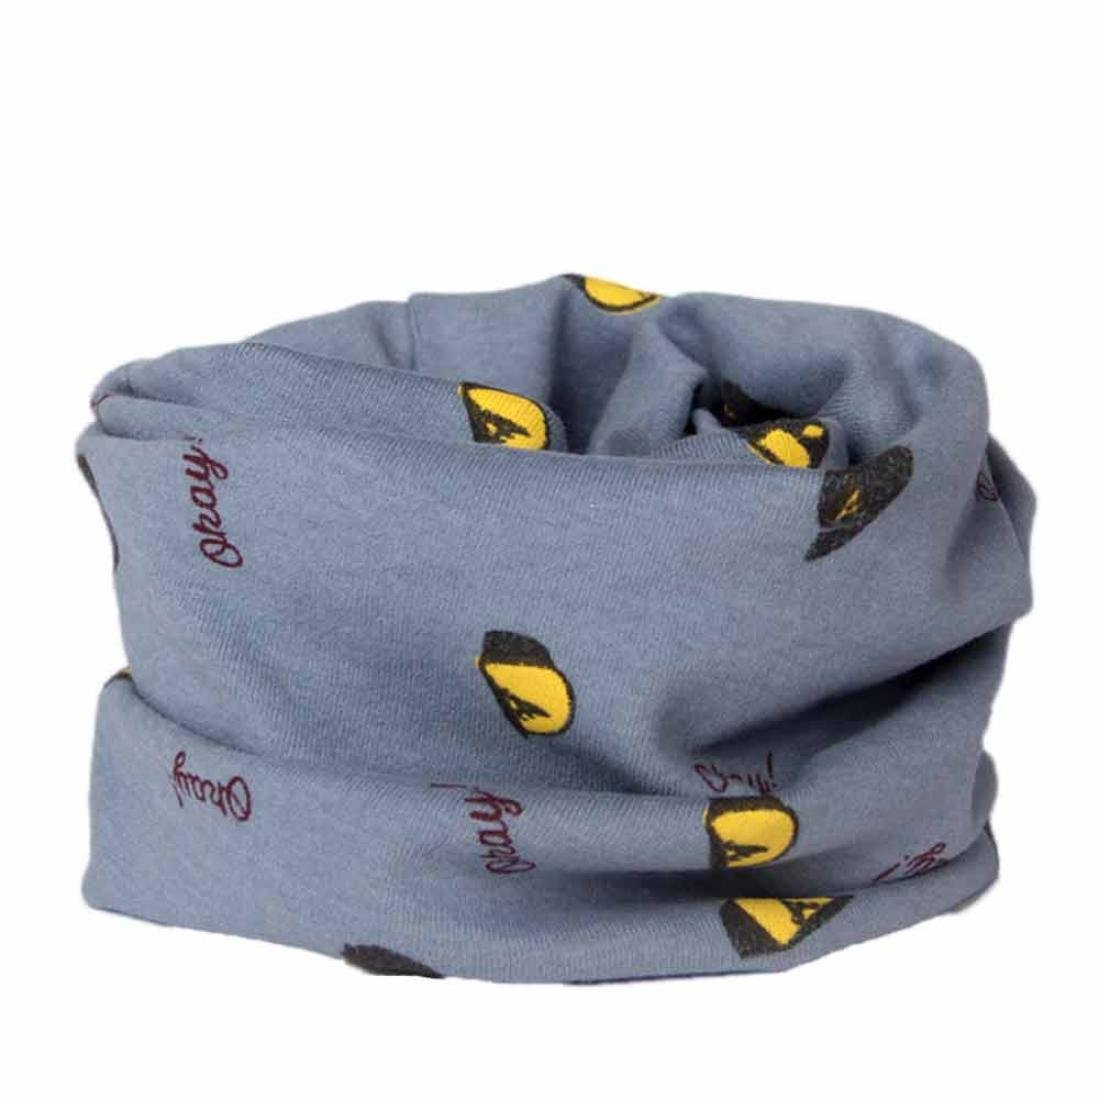 Baby Scarves,Huhua Cotton Neckerchief Fashion Warm Muffler for 2-10 Years Old